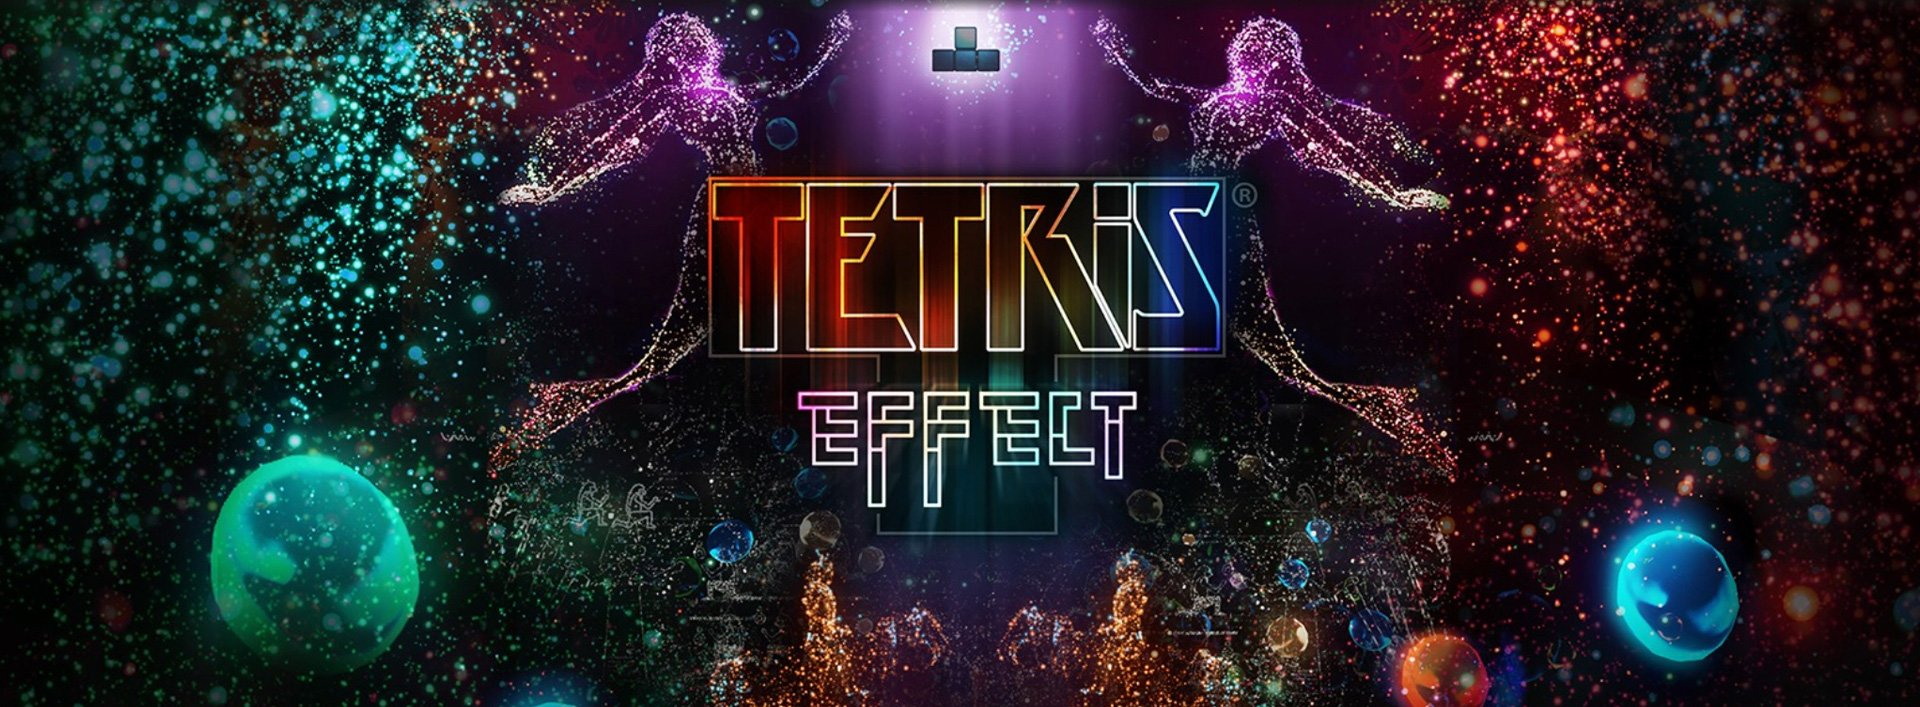 Tetris Effect is Now Available on Oculus Quest